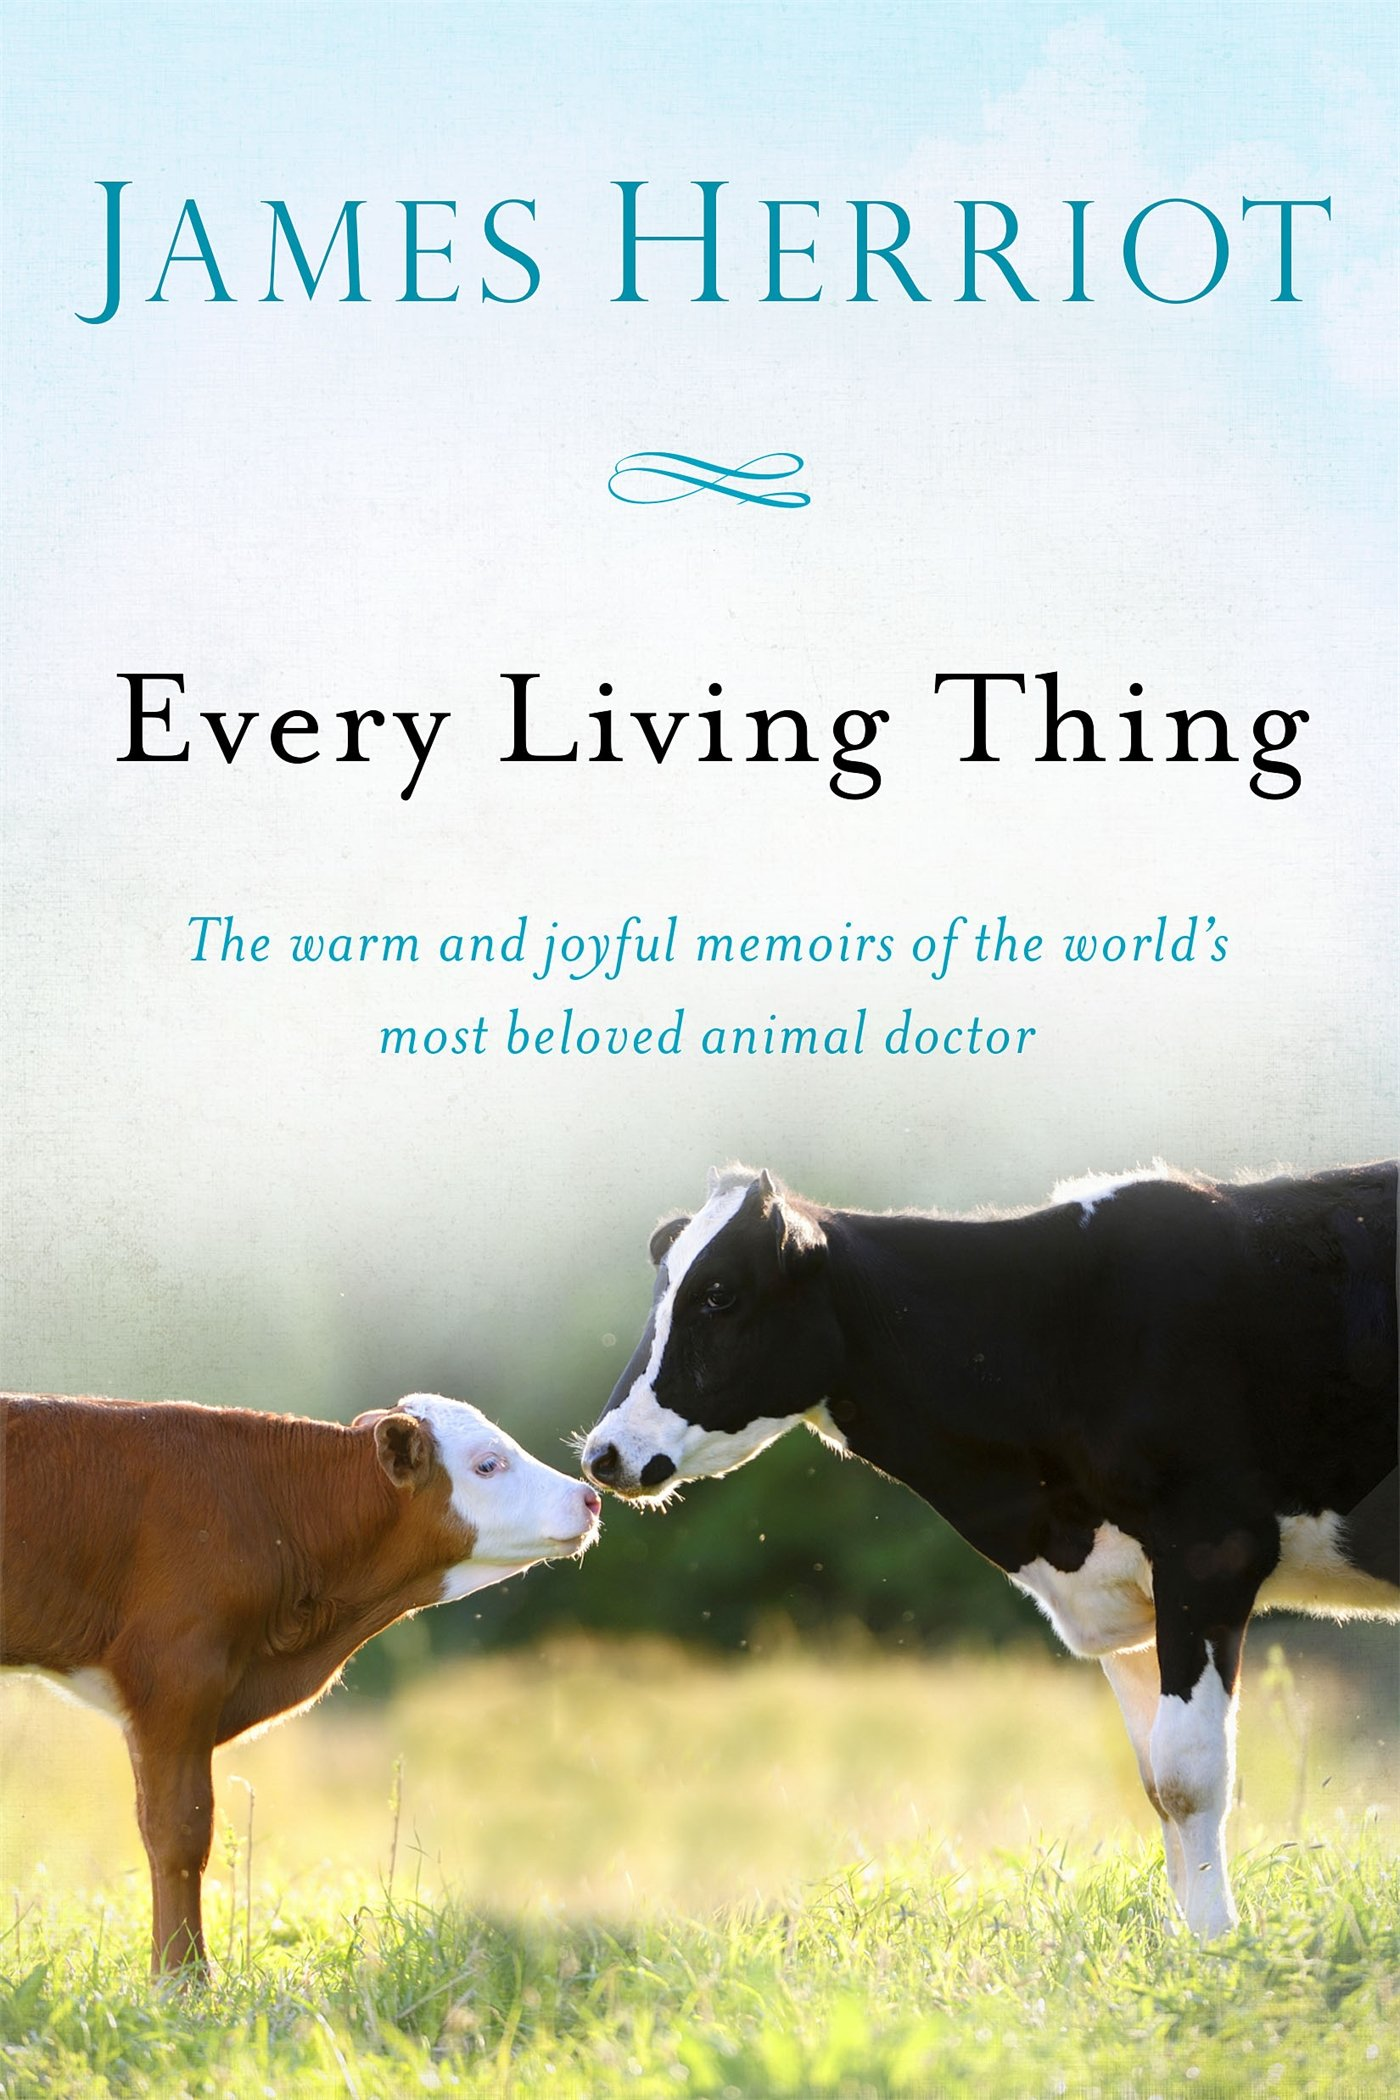 Every Living Thing: The Warm and Joyful Memoirs of the World's Most Beloved Animal Doctor (All Creatures Great and Small)